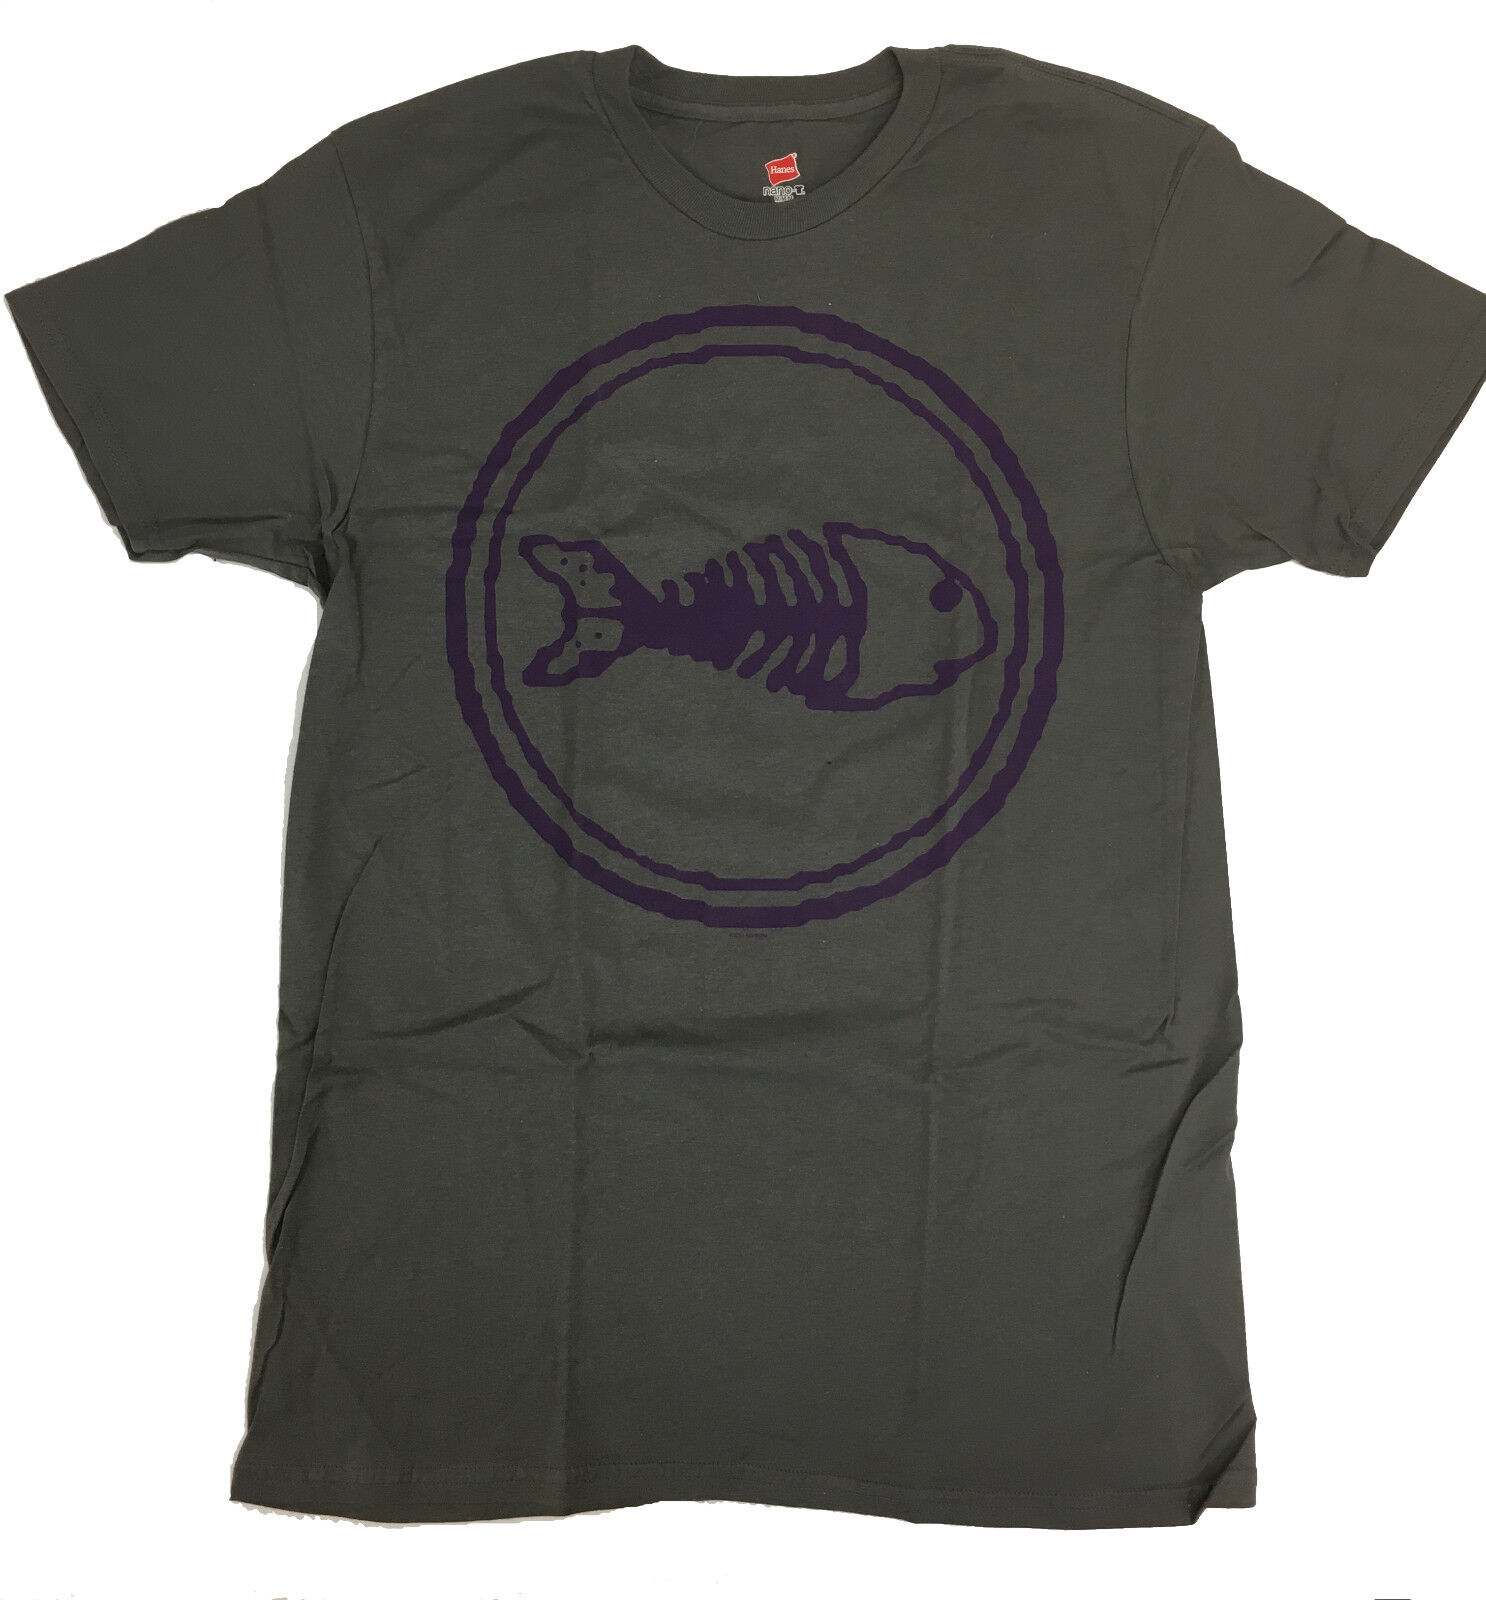 Fishbone - 2013 Tour Grey T-Shirt, Limited Edition - BRAND NEW